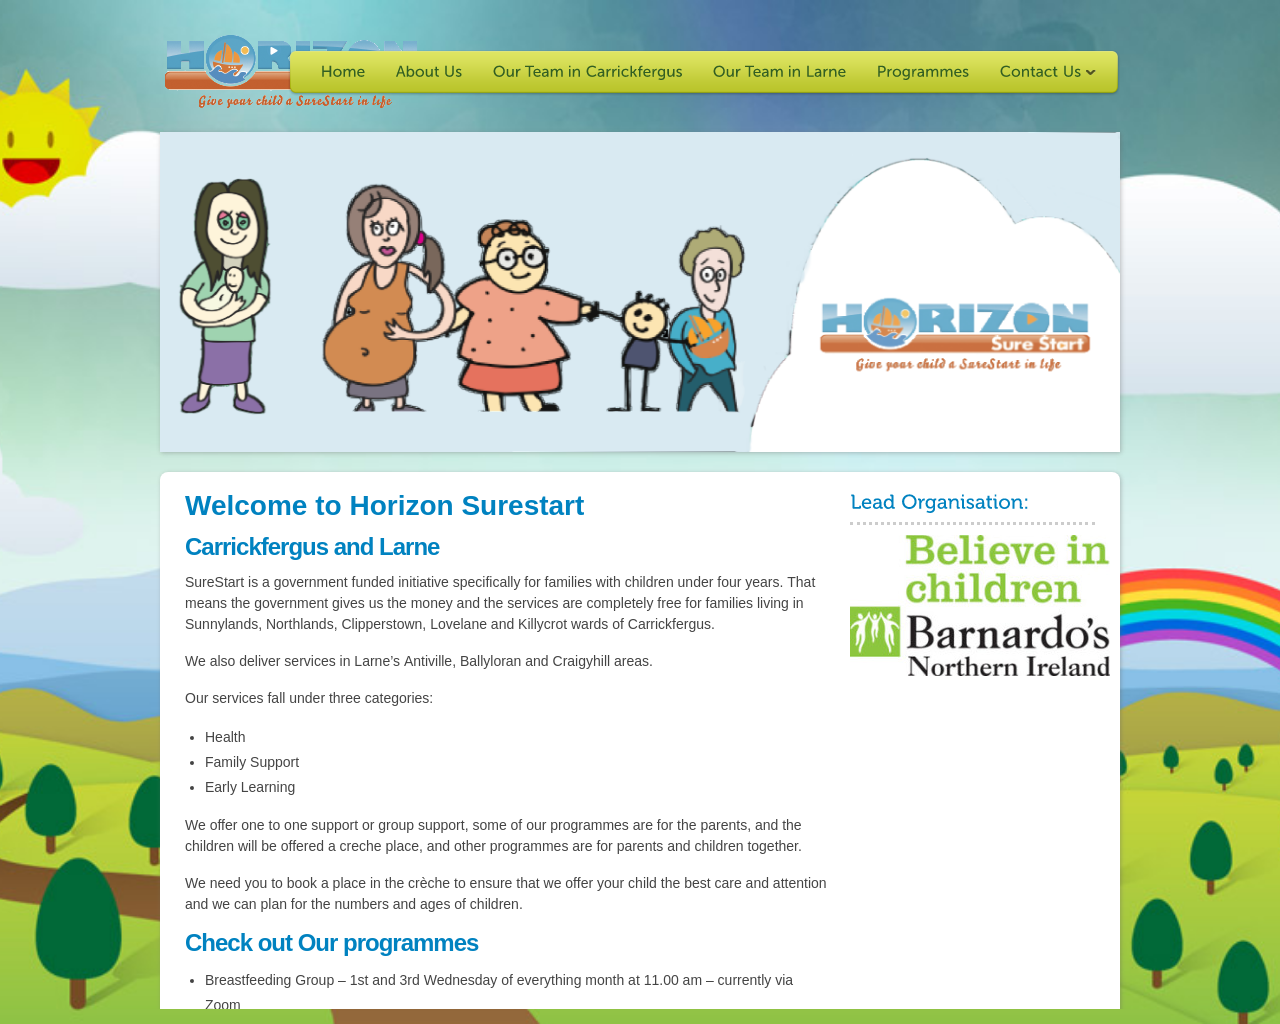 Horizon Surestart